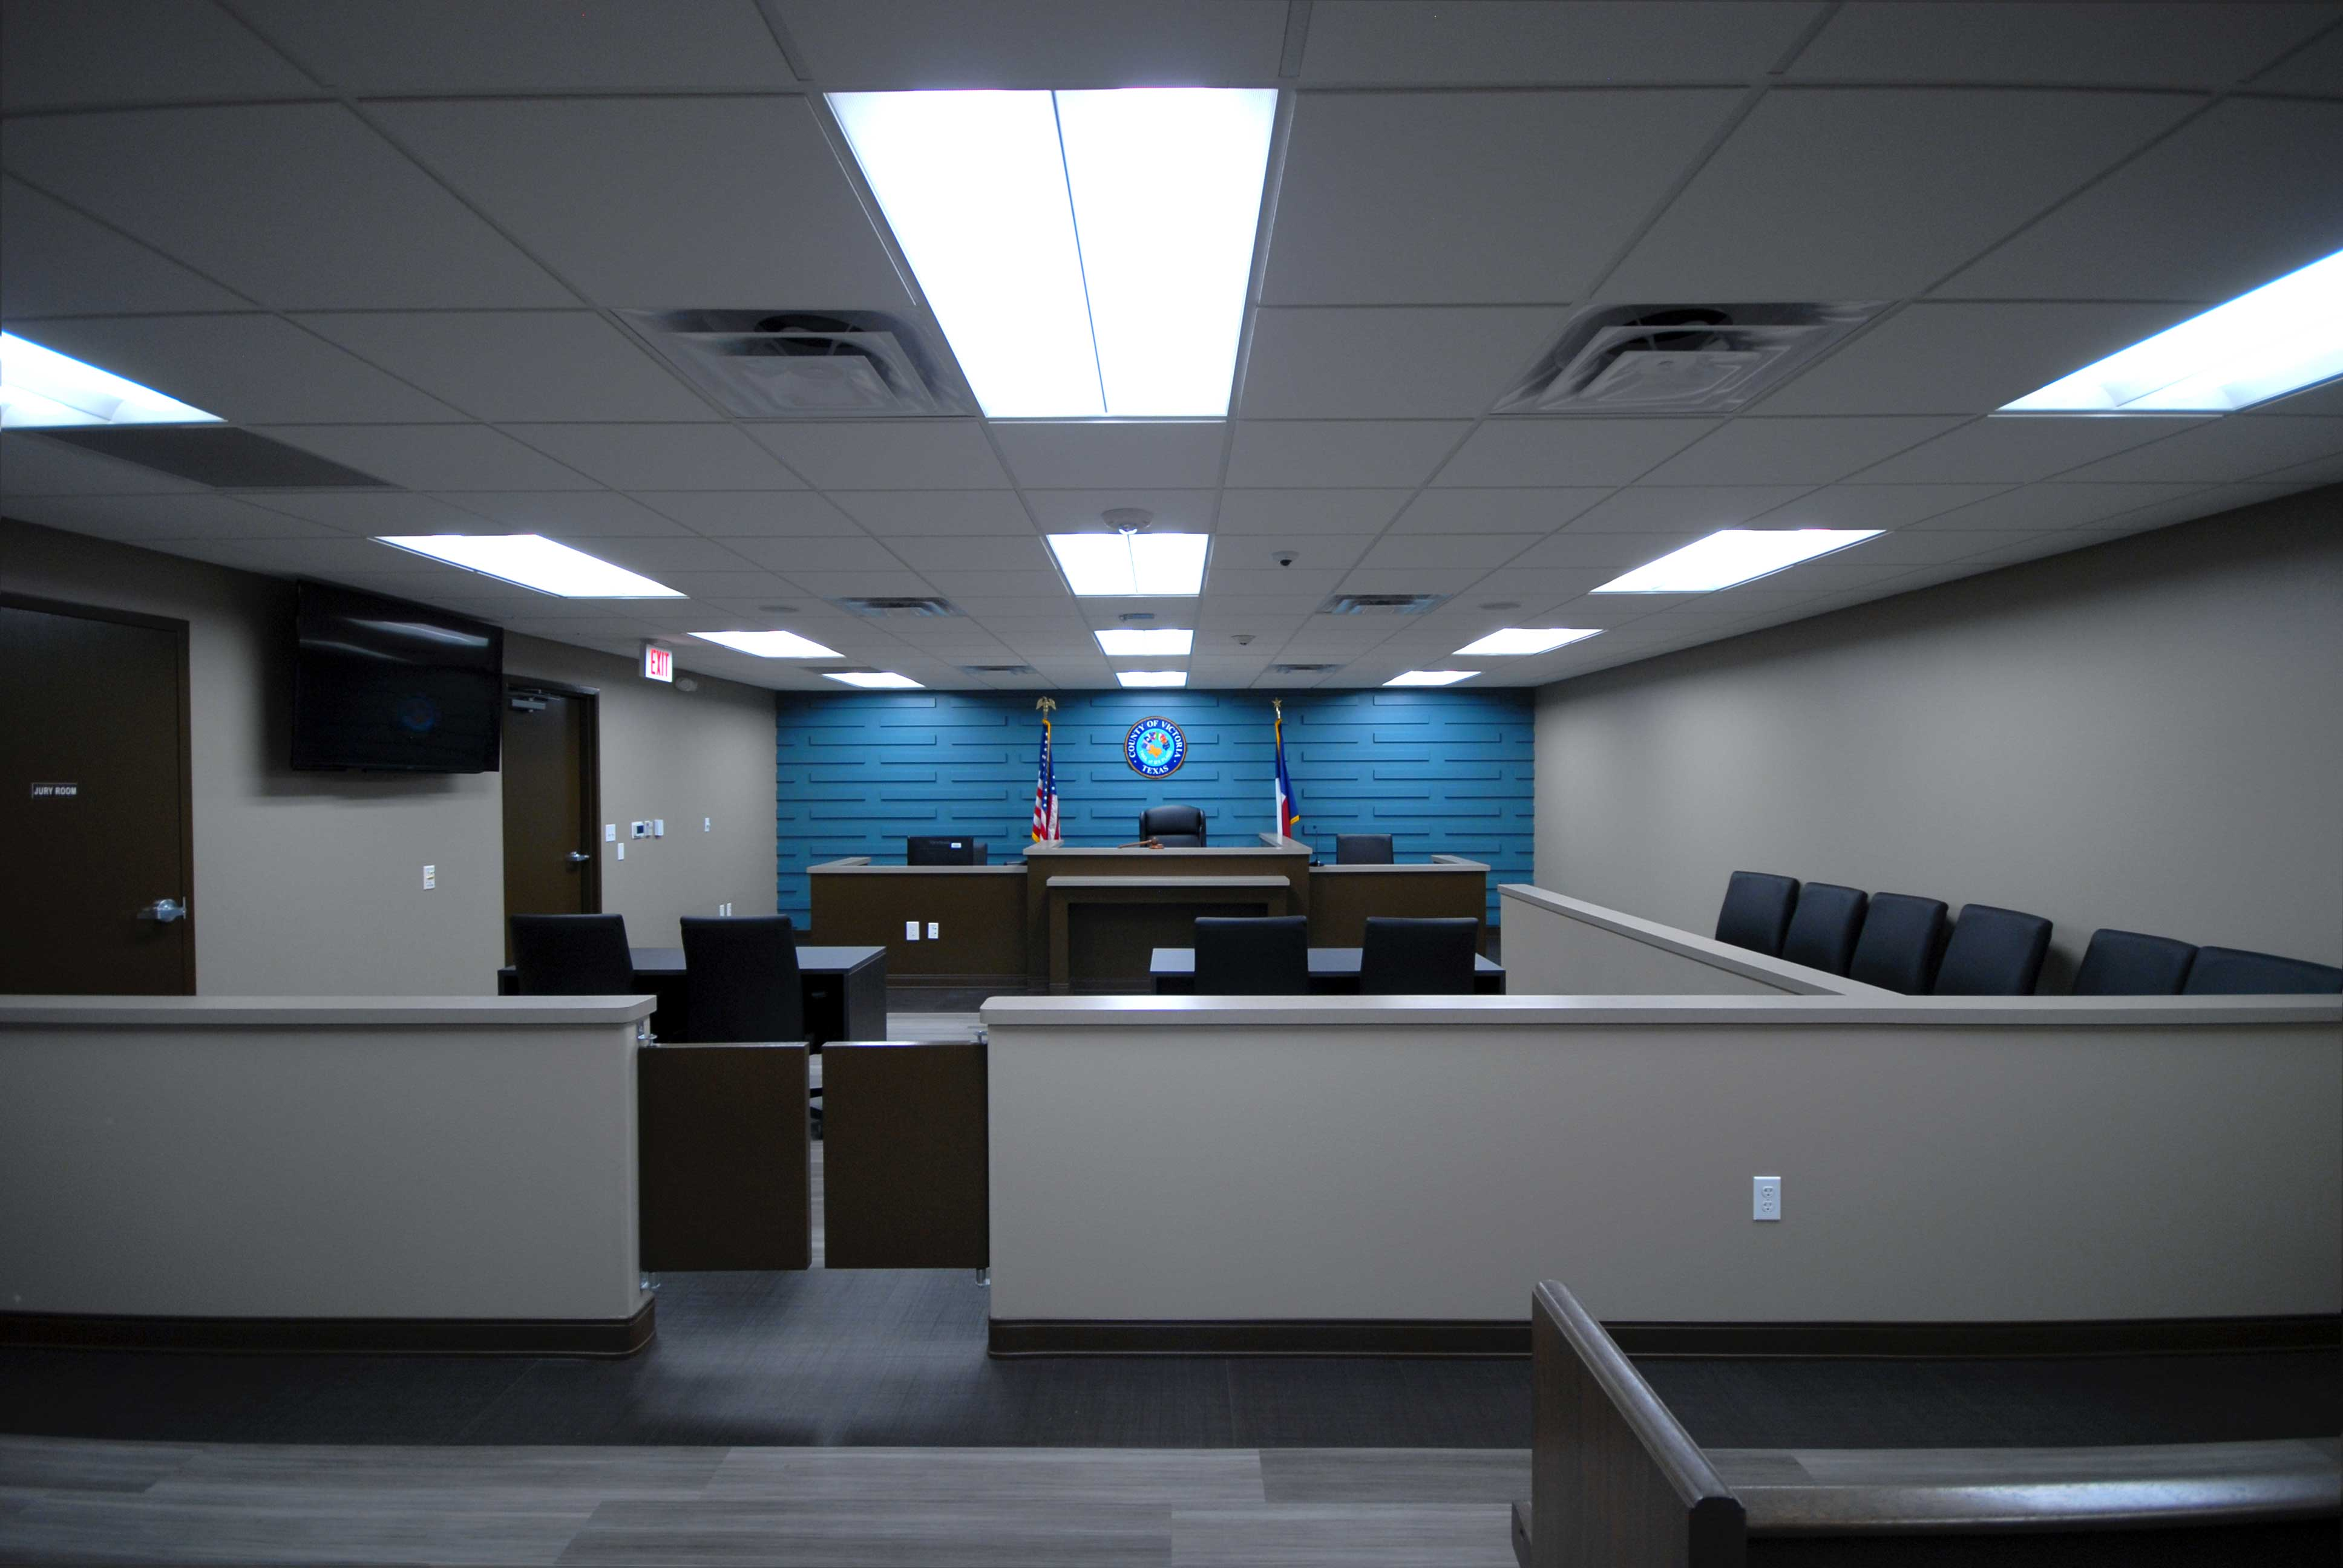 Justice of the Peace Precinct 2 Courtroom